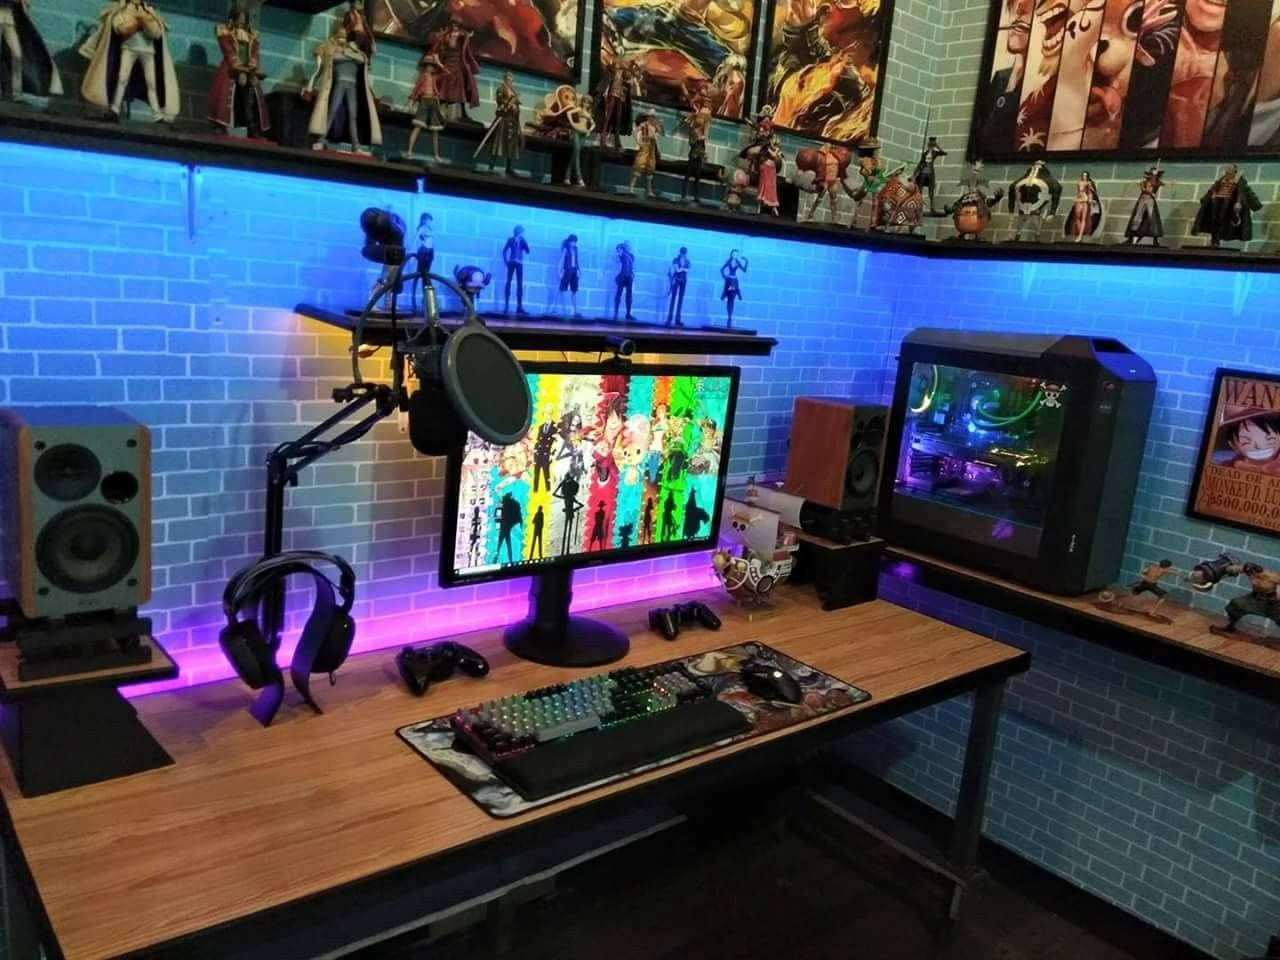 This List Of The Most Advanced Smart And Innovative Video Game Room Ideas Will Guide You To Find A Design Game Room Design Video Game Rooms Gaming Room Setup